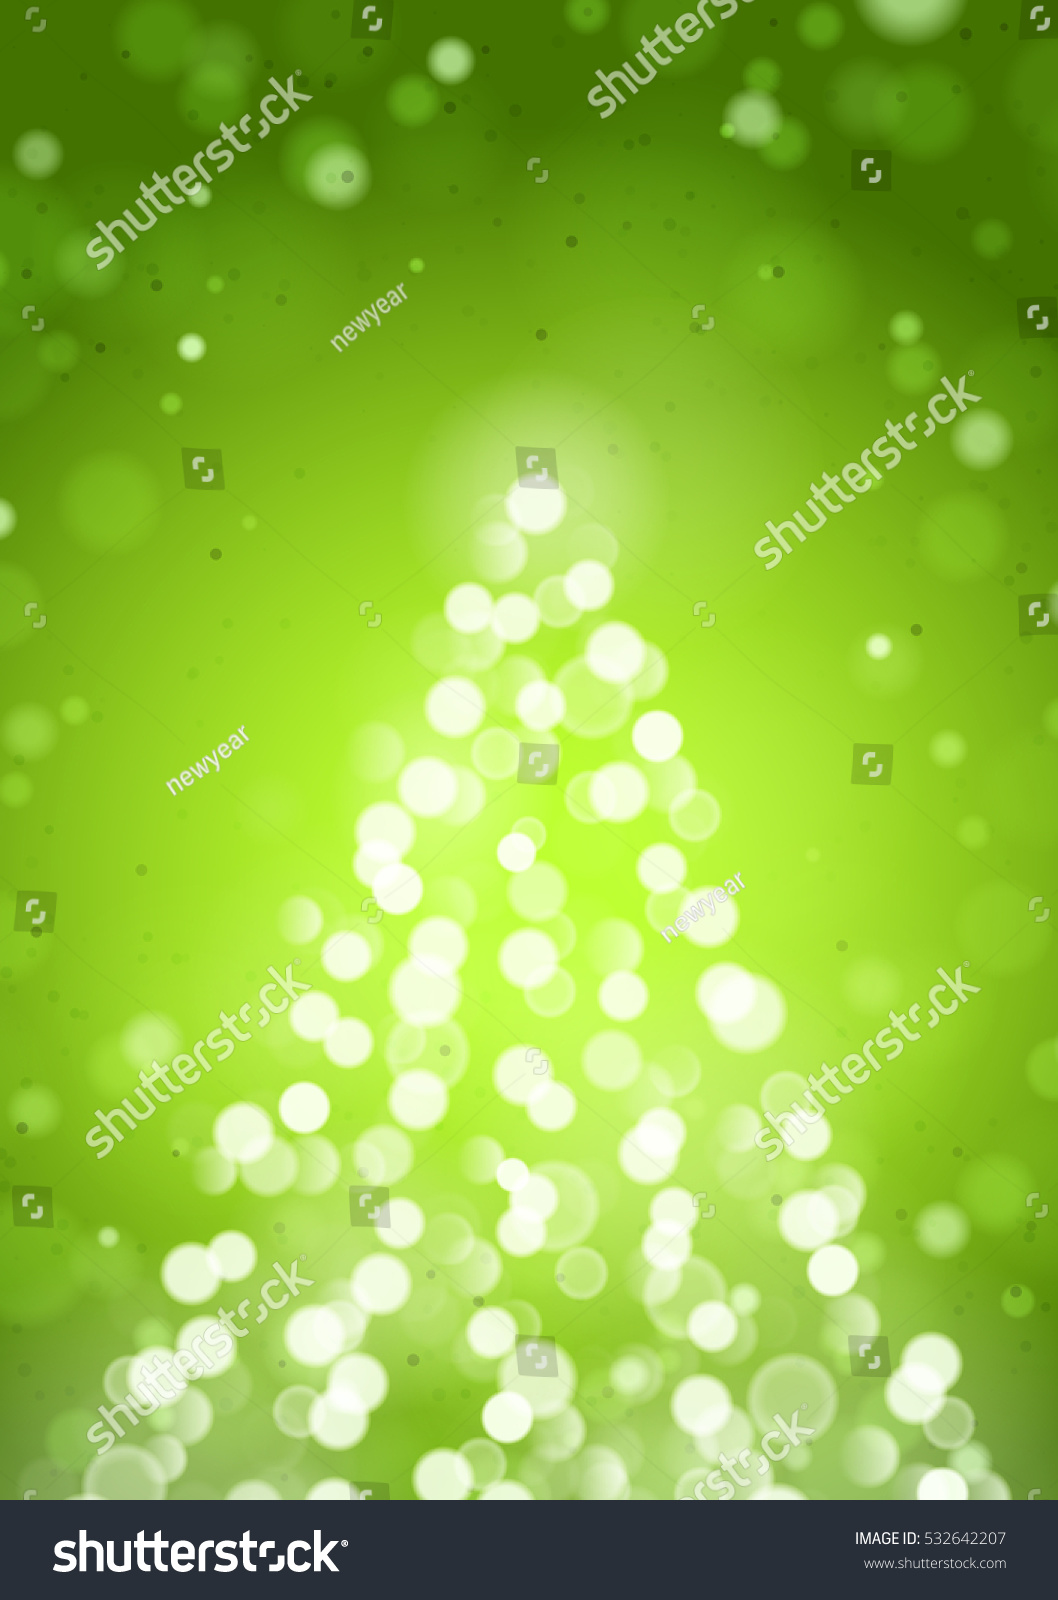 Abstract Christmas Tree By Unfocused Blurred Lights On The Vertical Green Background